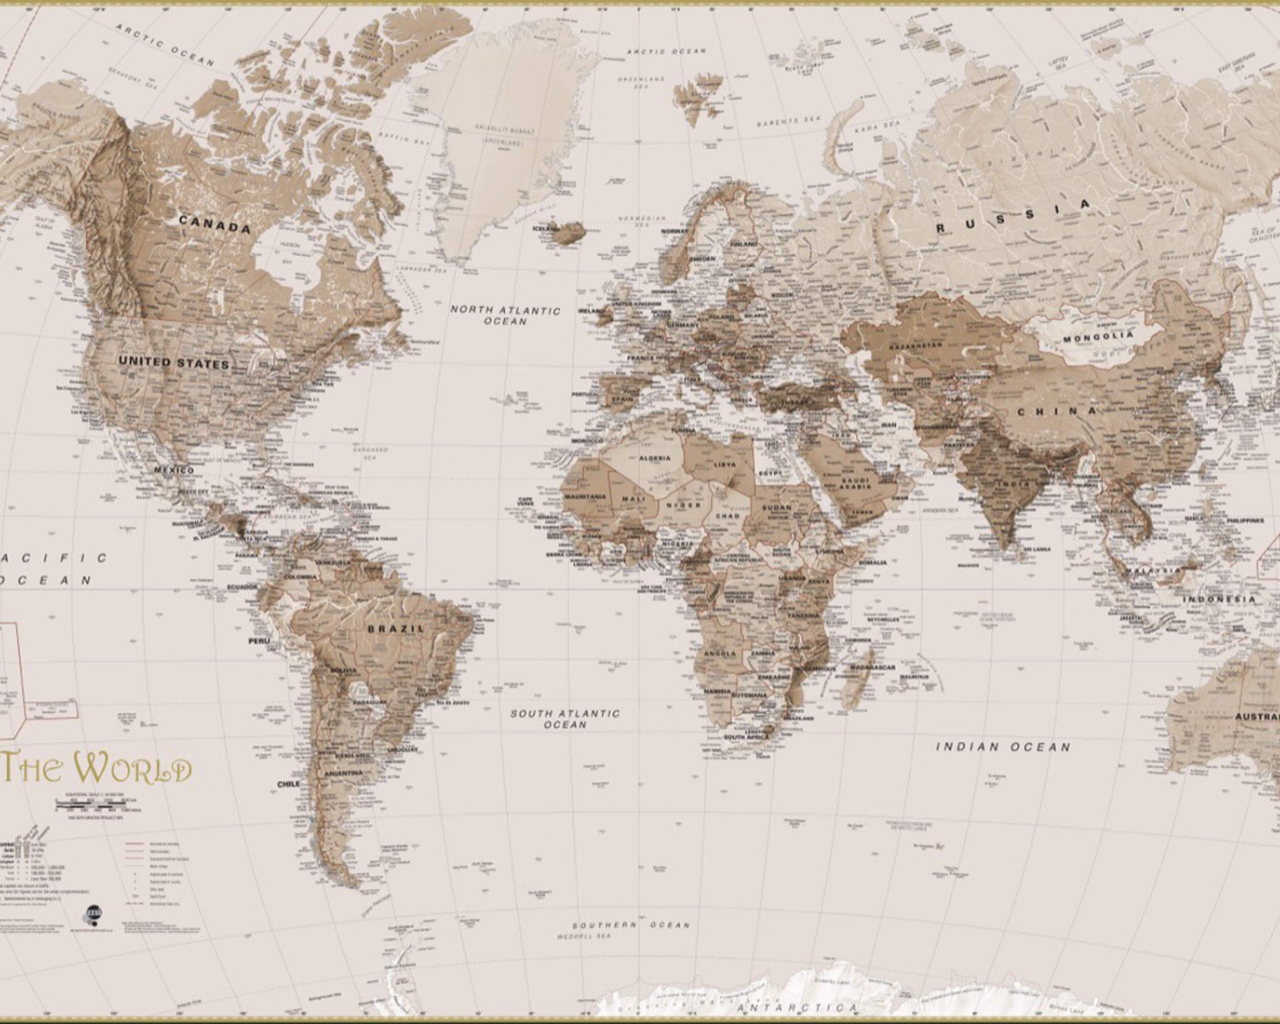 Free Download Earth Tone World Map Mural Wallpaper Murals Wallpaper 1650x1100 For Your Desktop Mobile Tablet Explore 74 Earth Map Wallpaper Earth From Space Wallpaper Planet Earth Wallpaper Earth